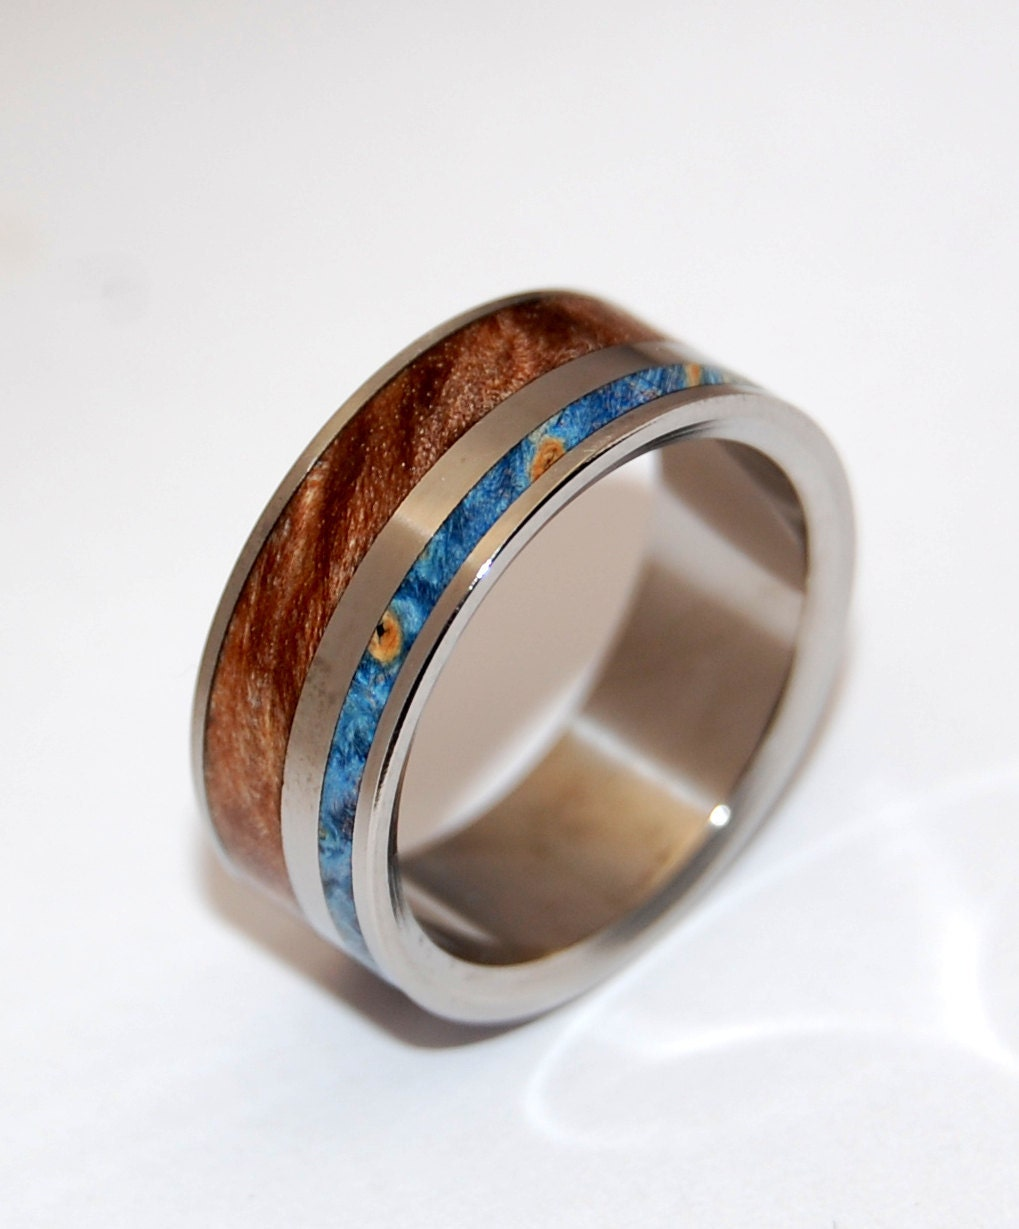 titanium ring wedding ring Wooden Wedding Rings wood ring